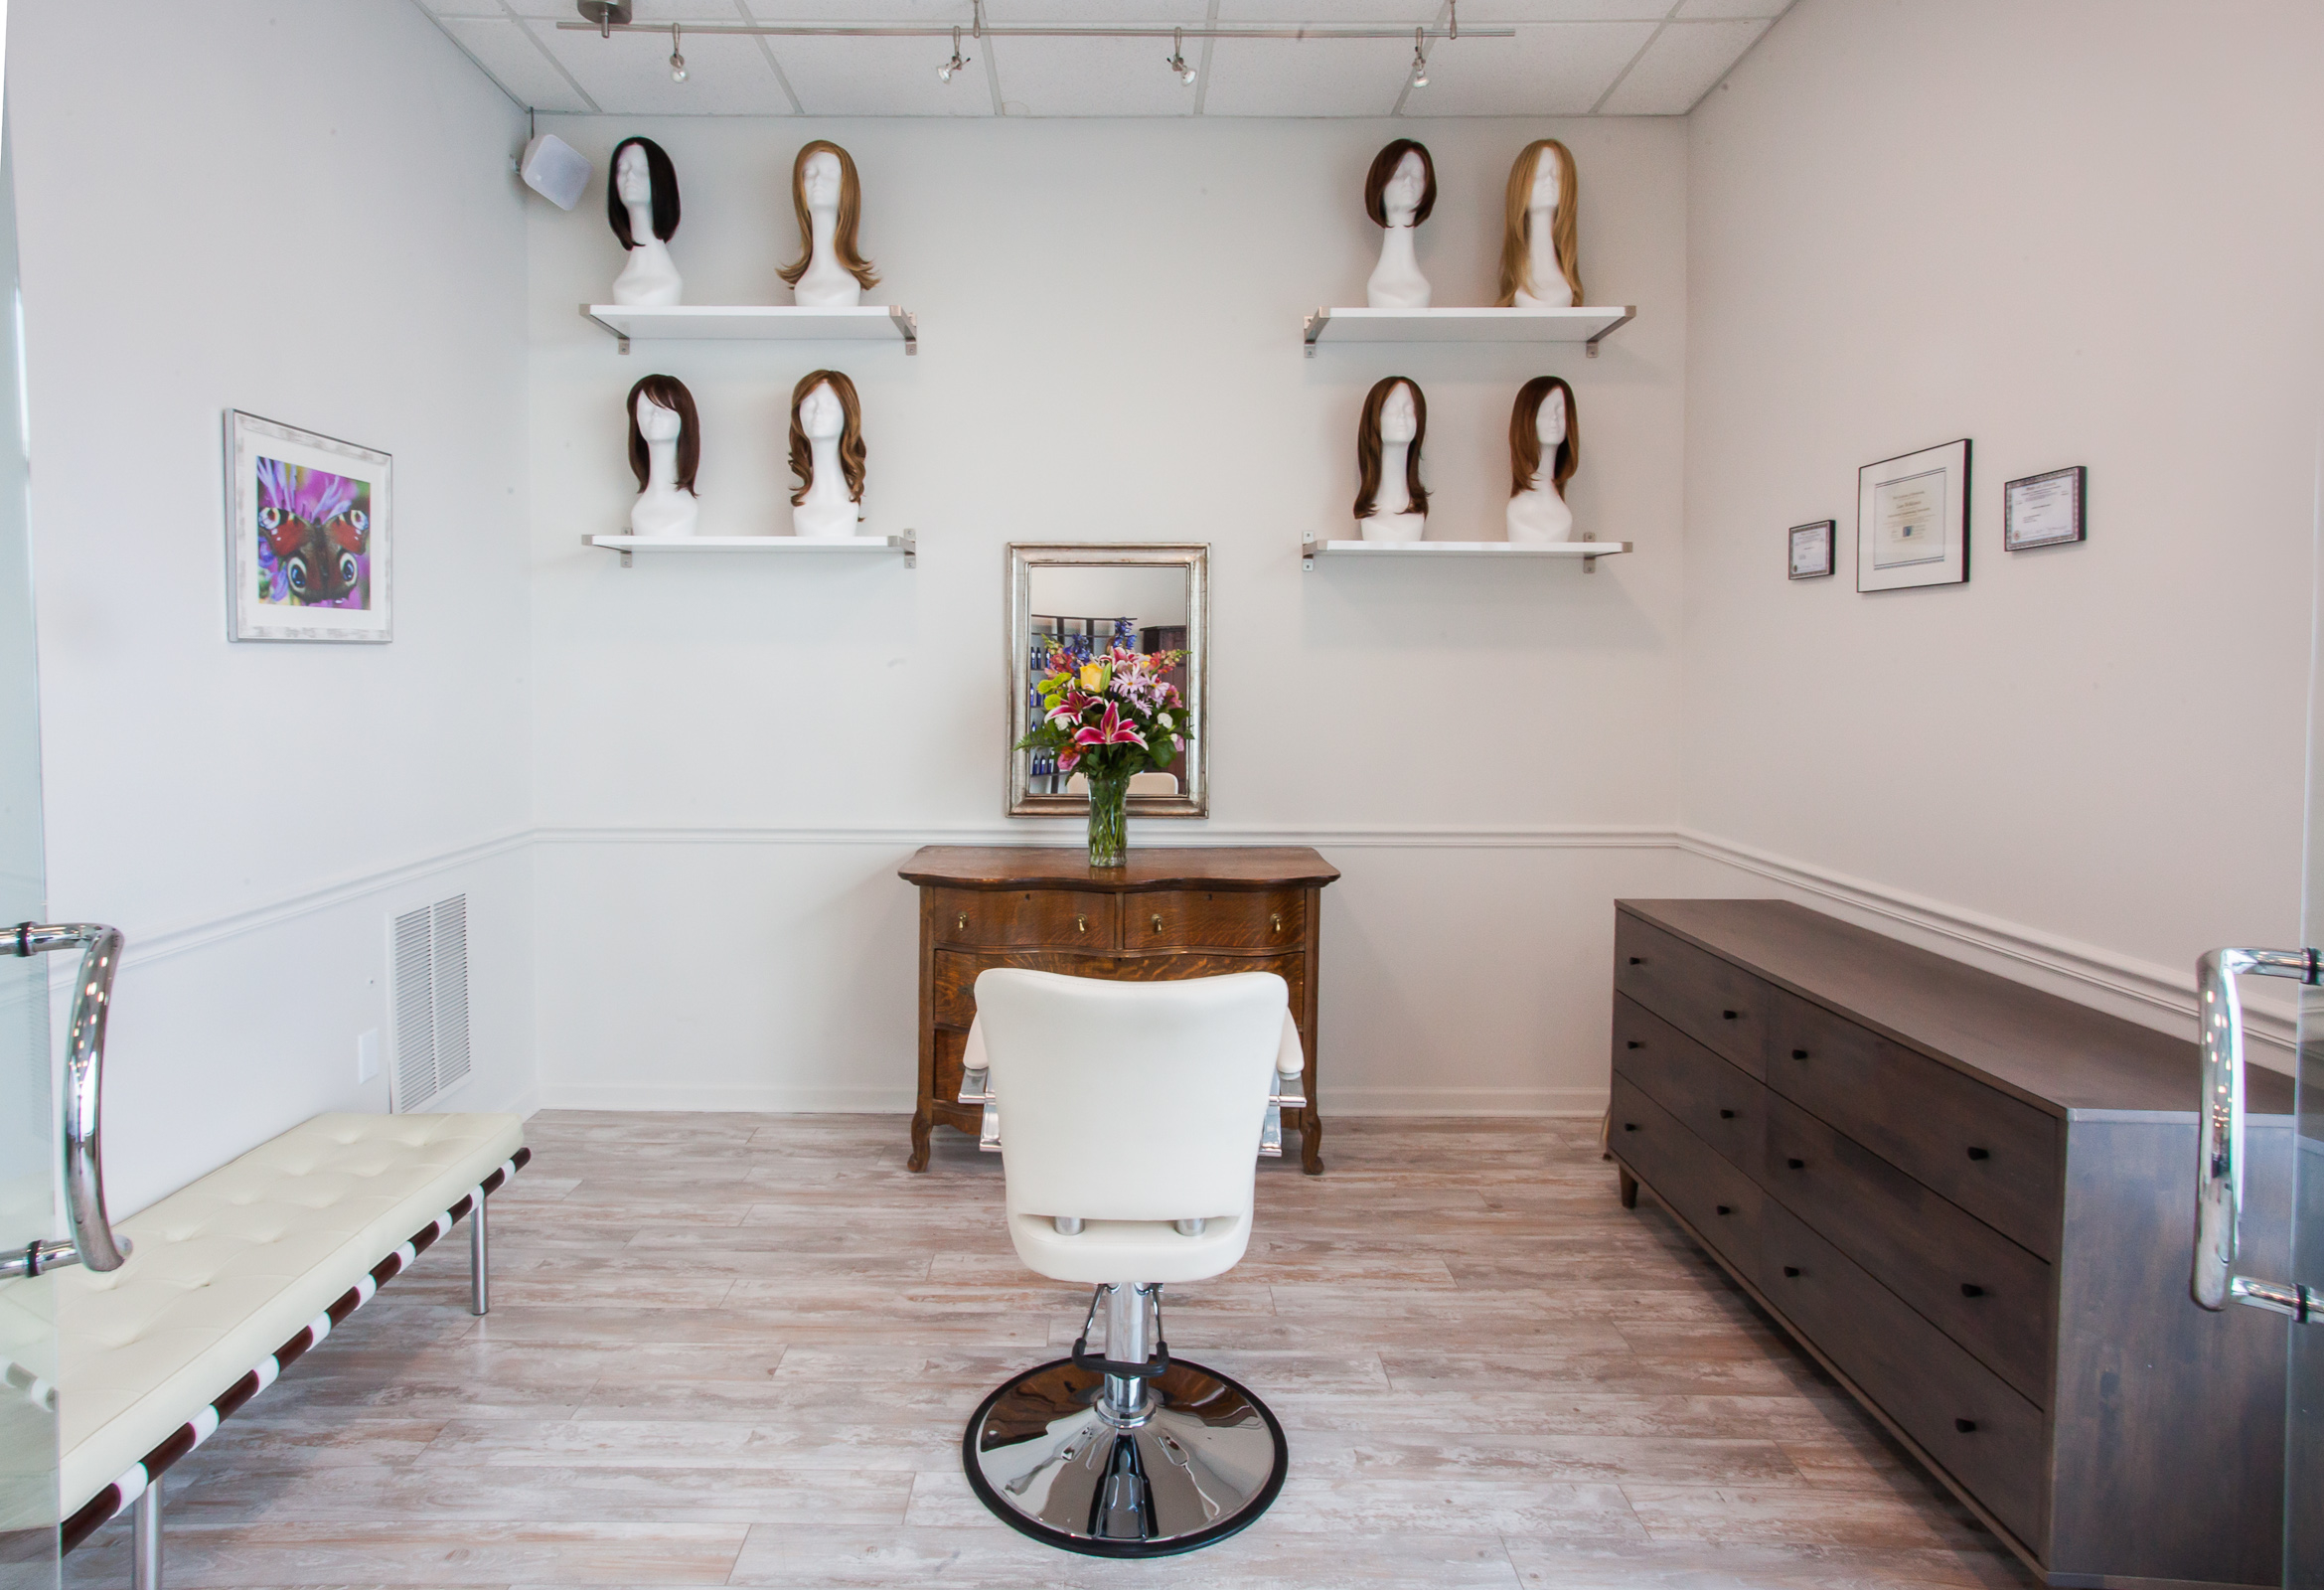 Chrysalis custom hair chicago illinois il for 24 hour nail salon chicago